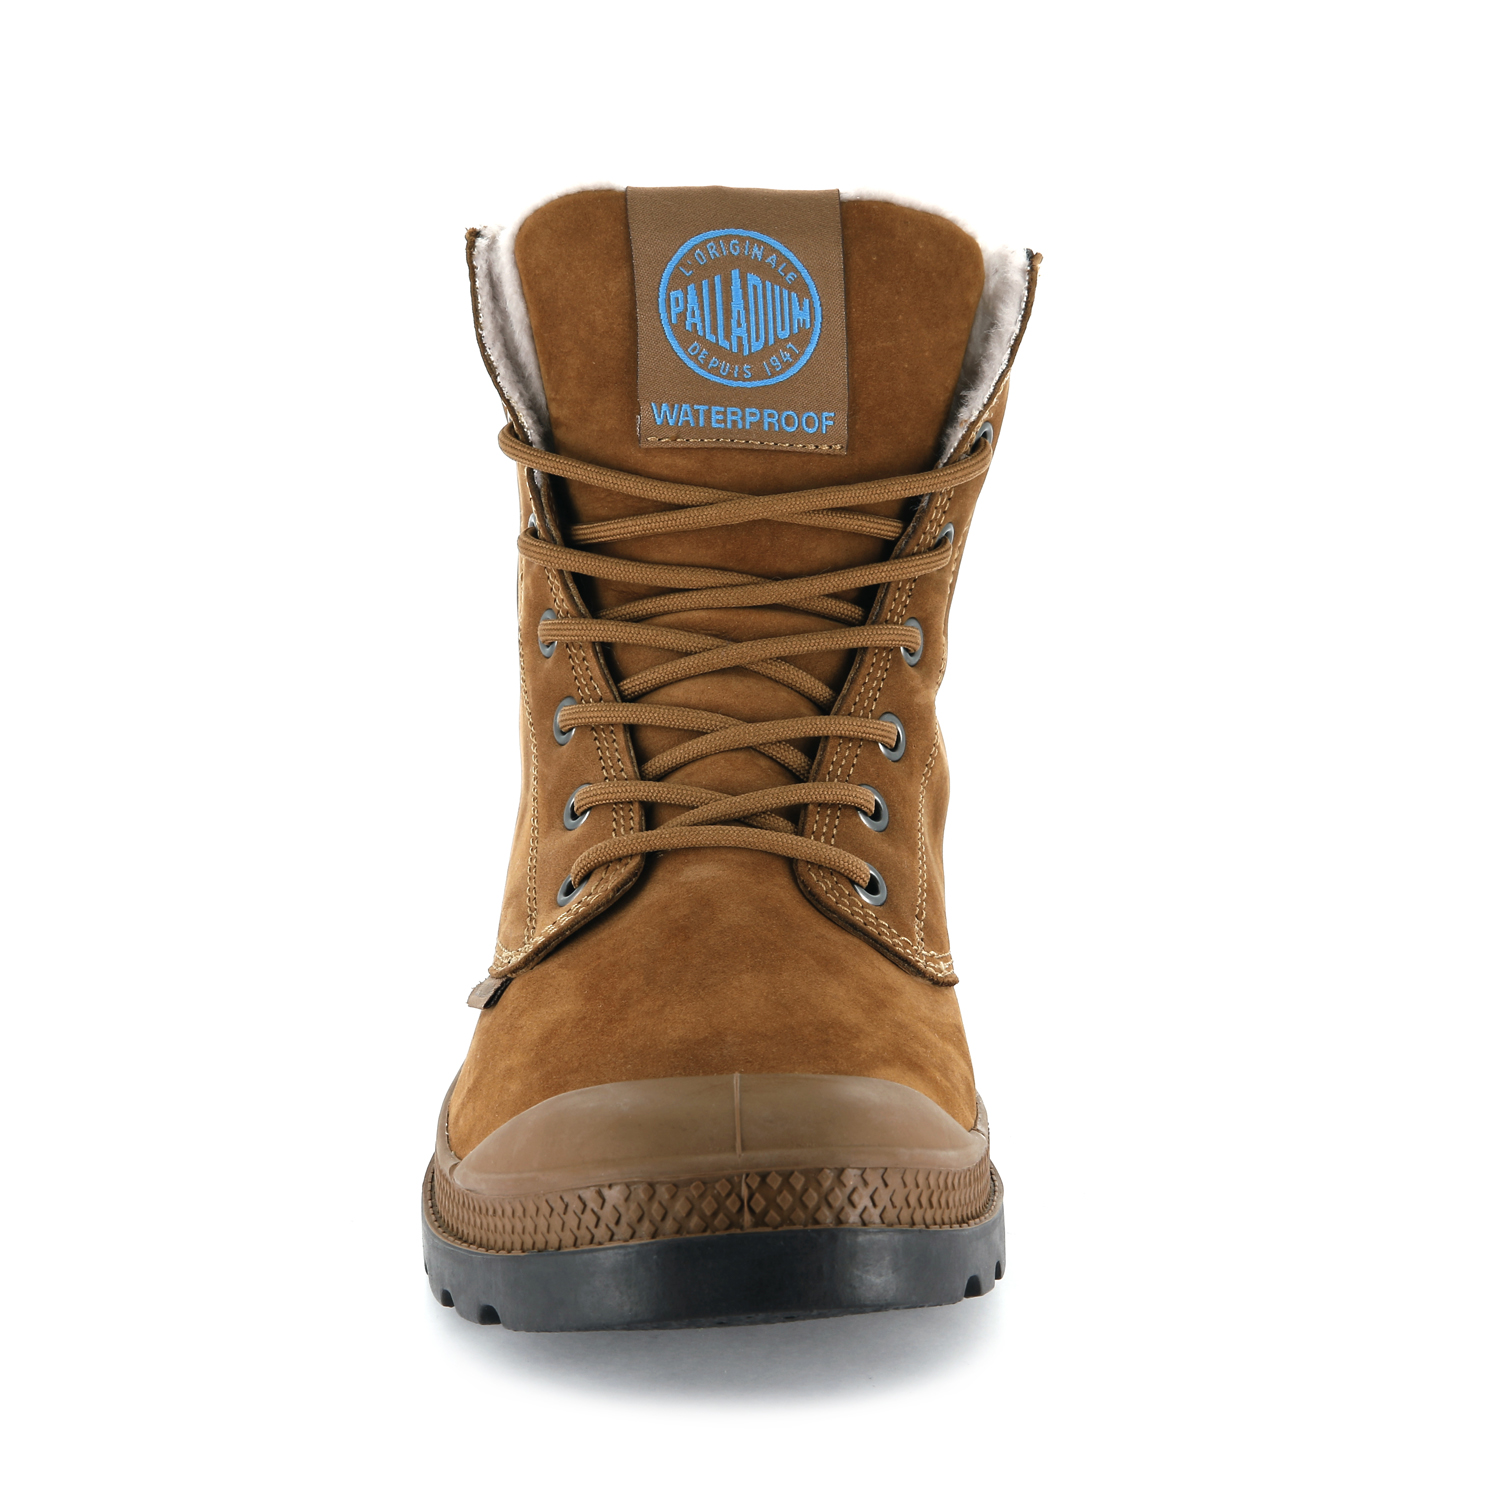 Palladium-Mens-Pampa-Sport-Cuff-Waterproof-Suede-Leather-Shoe-Wool-Lined-Boots thumbnail 24